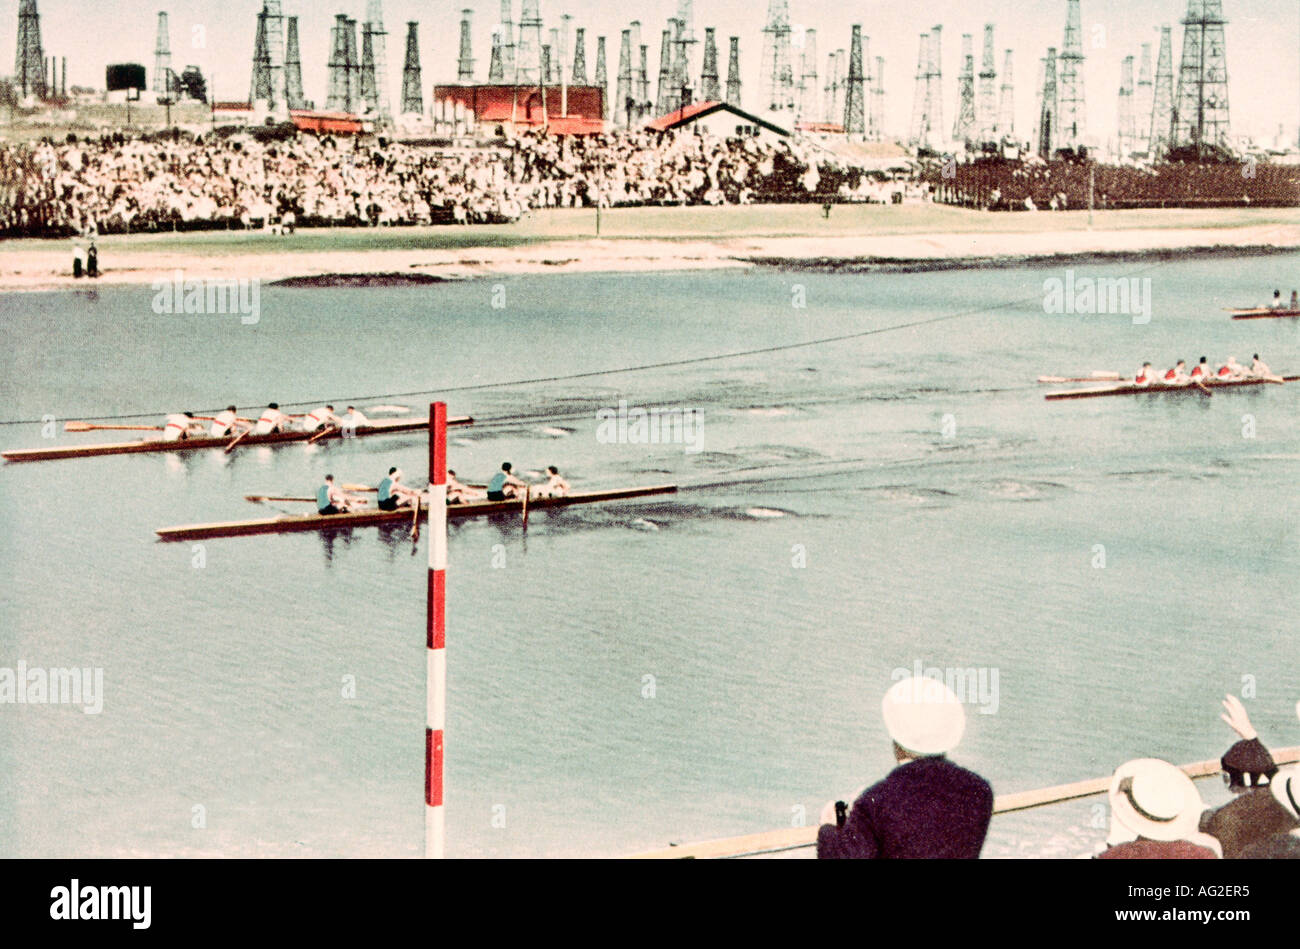 Sports, Olympic Games, finale, rowing, Los Angeles, USA, 1932, Additional-Rights-Clearances-NA - Stock Image